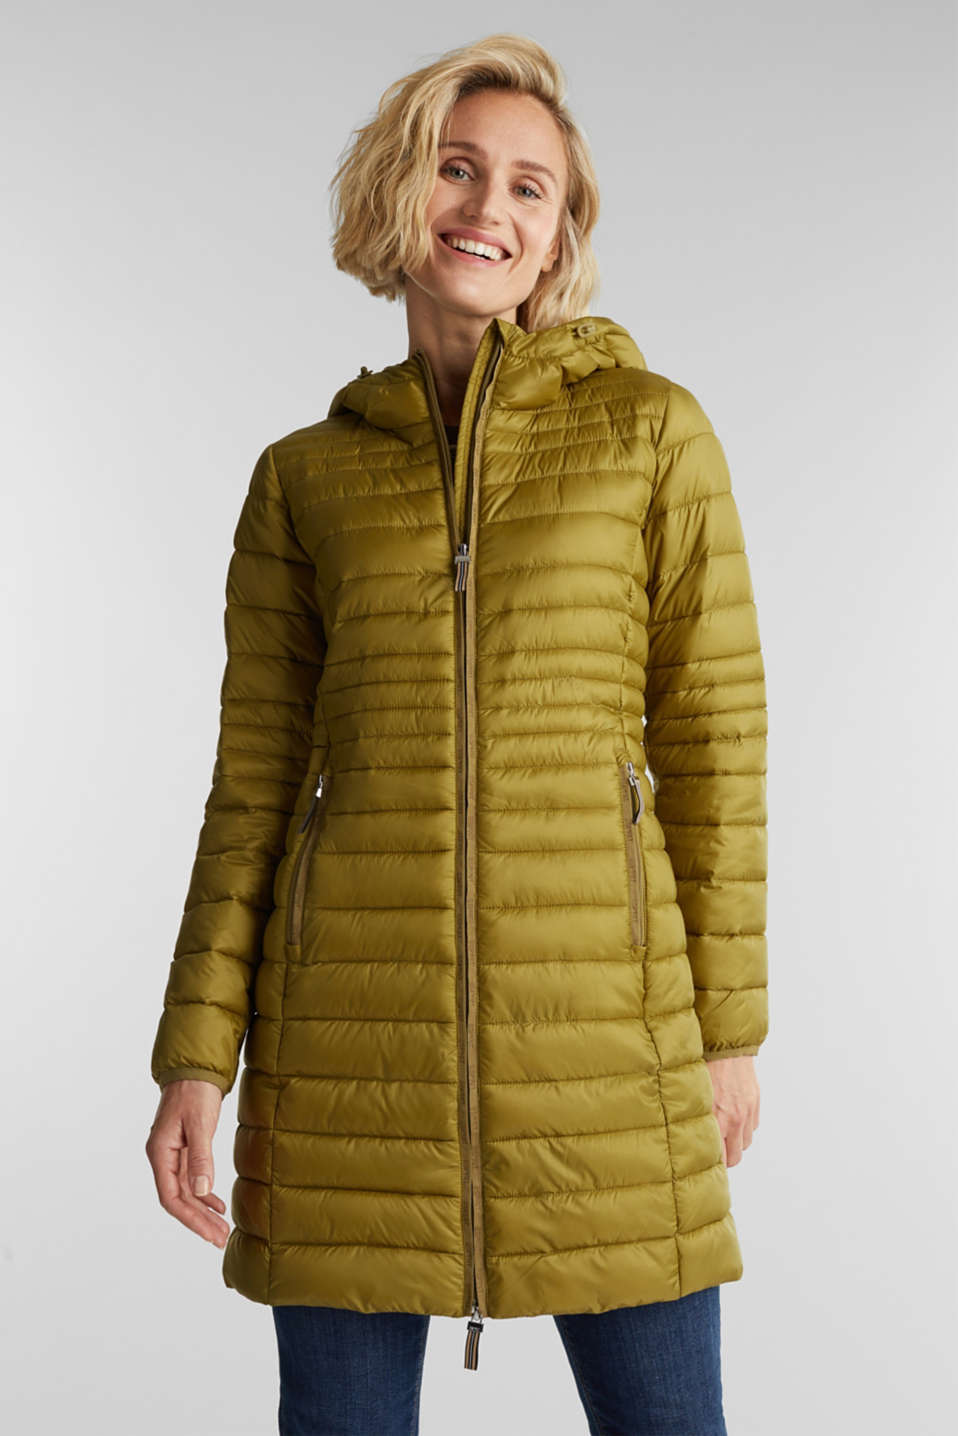 Esprit - Manteau matelassé en 3M™ Thinsulate™